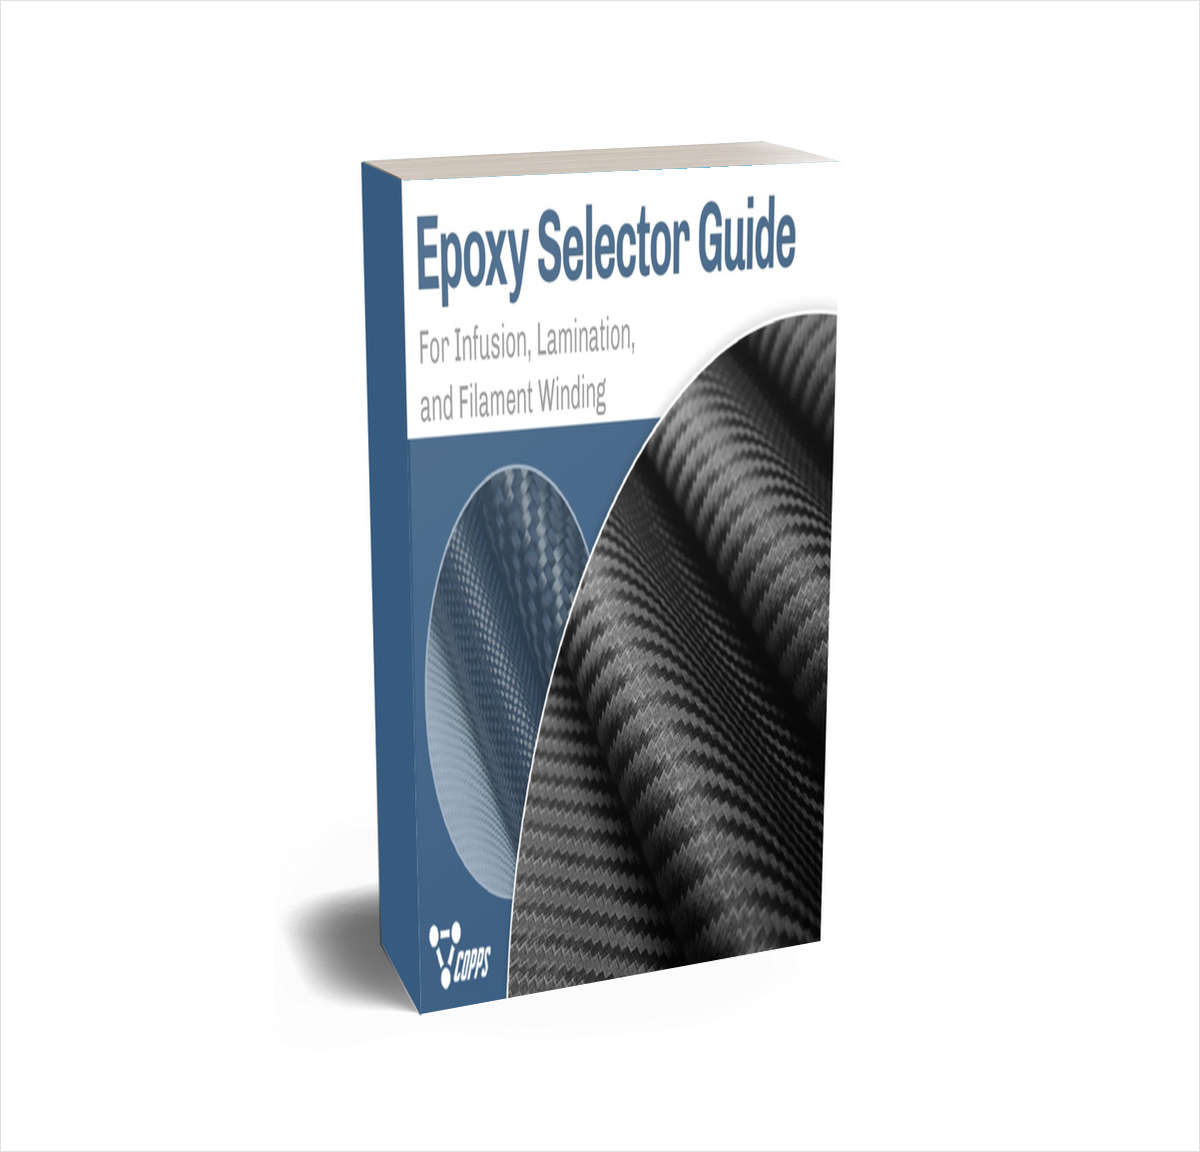 Epoxy Selector Guide for Infusion, Lamination, and Filament Winding